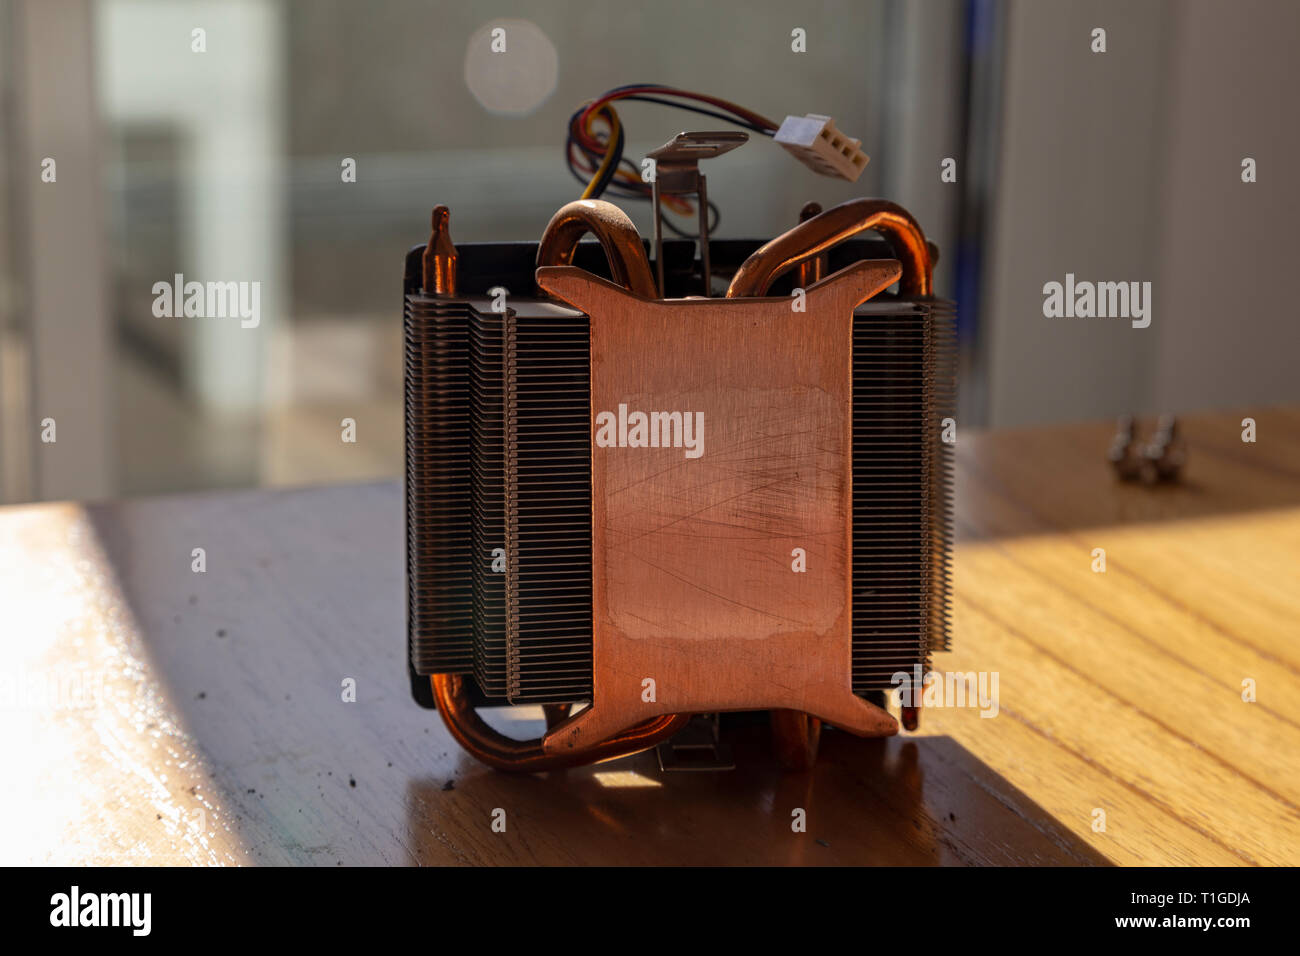 CPU heat sinker from a PC. Copper heatsinker with a fan for cooling the processor - Stock Image